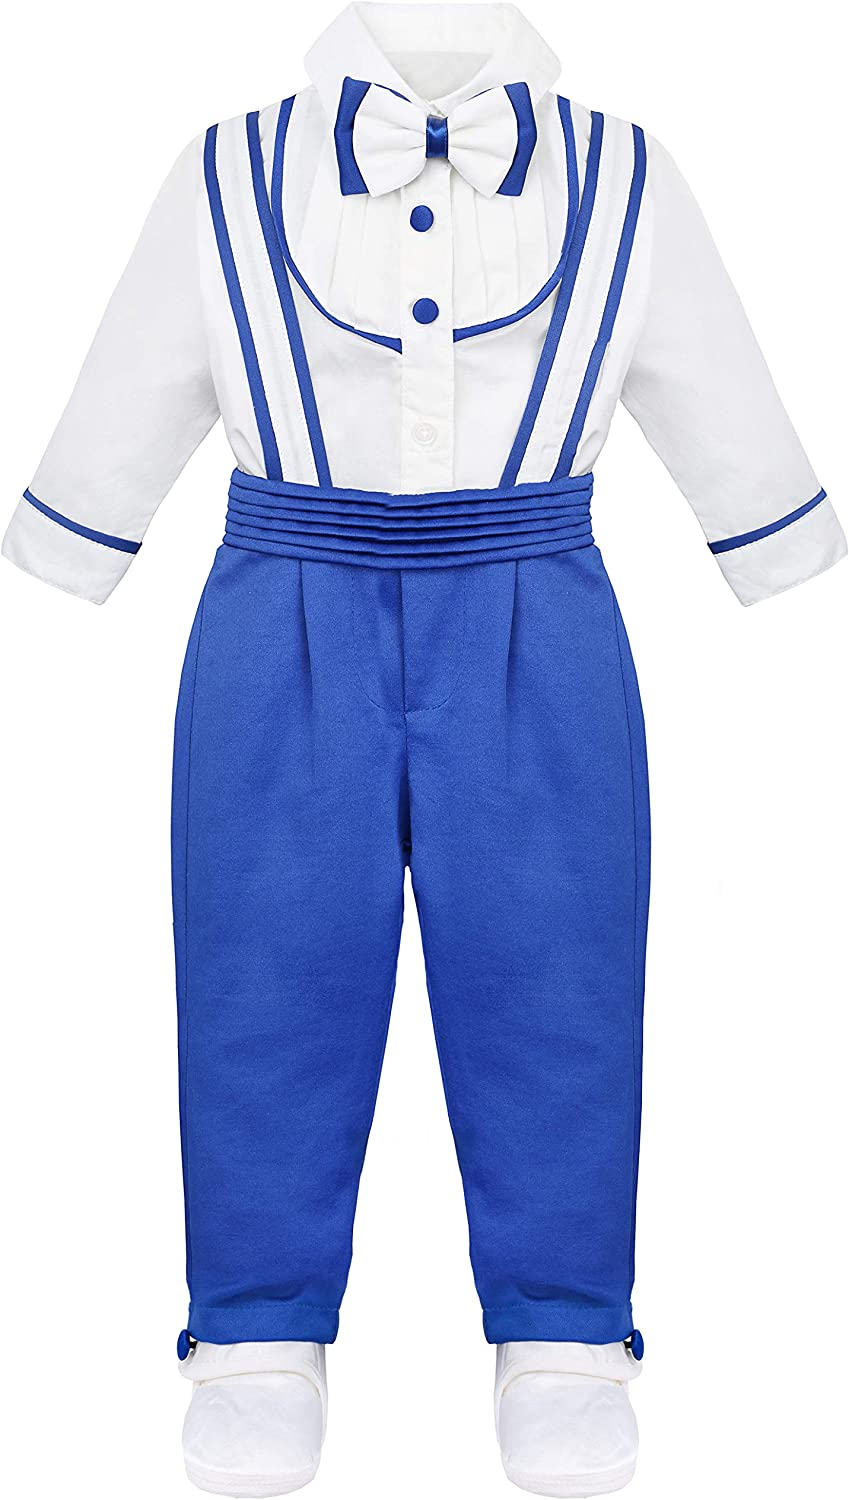 Lilax Baby Boy Gentleman Outfit Jumpsuit, T-Shirt and Shoe Infant 3 Piece Set